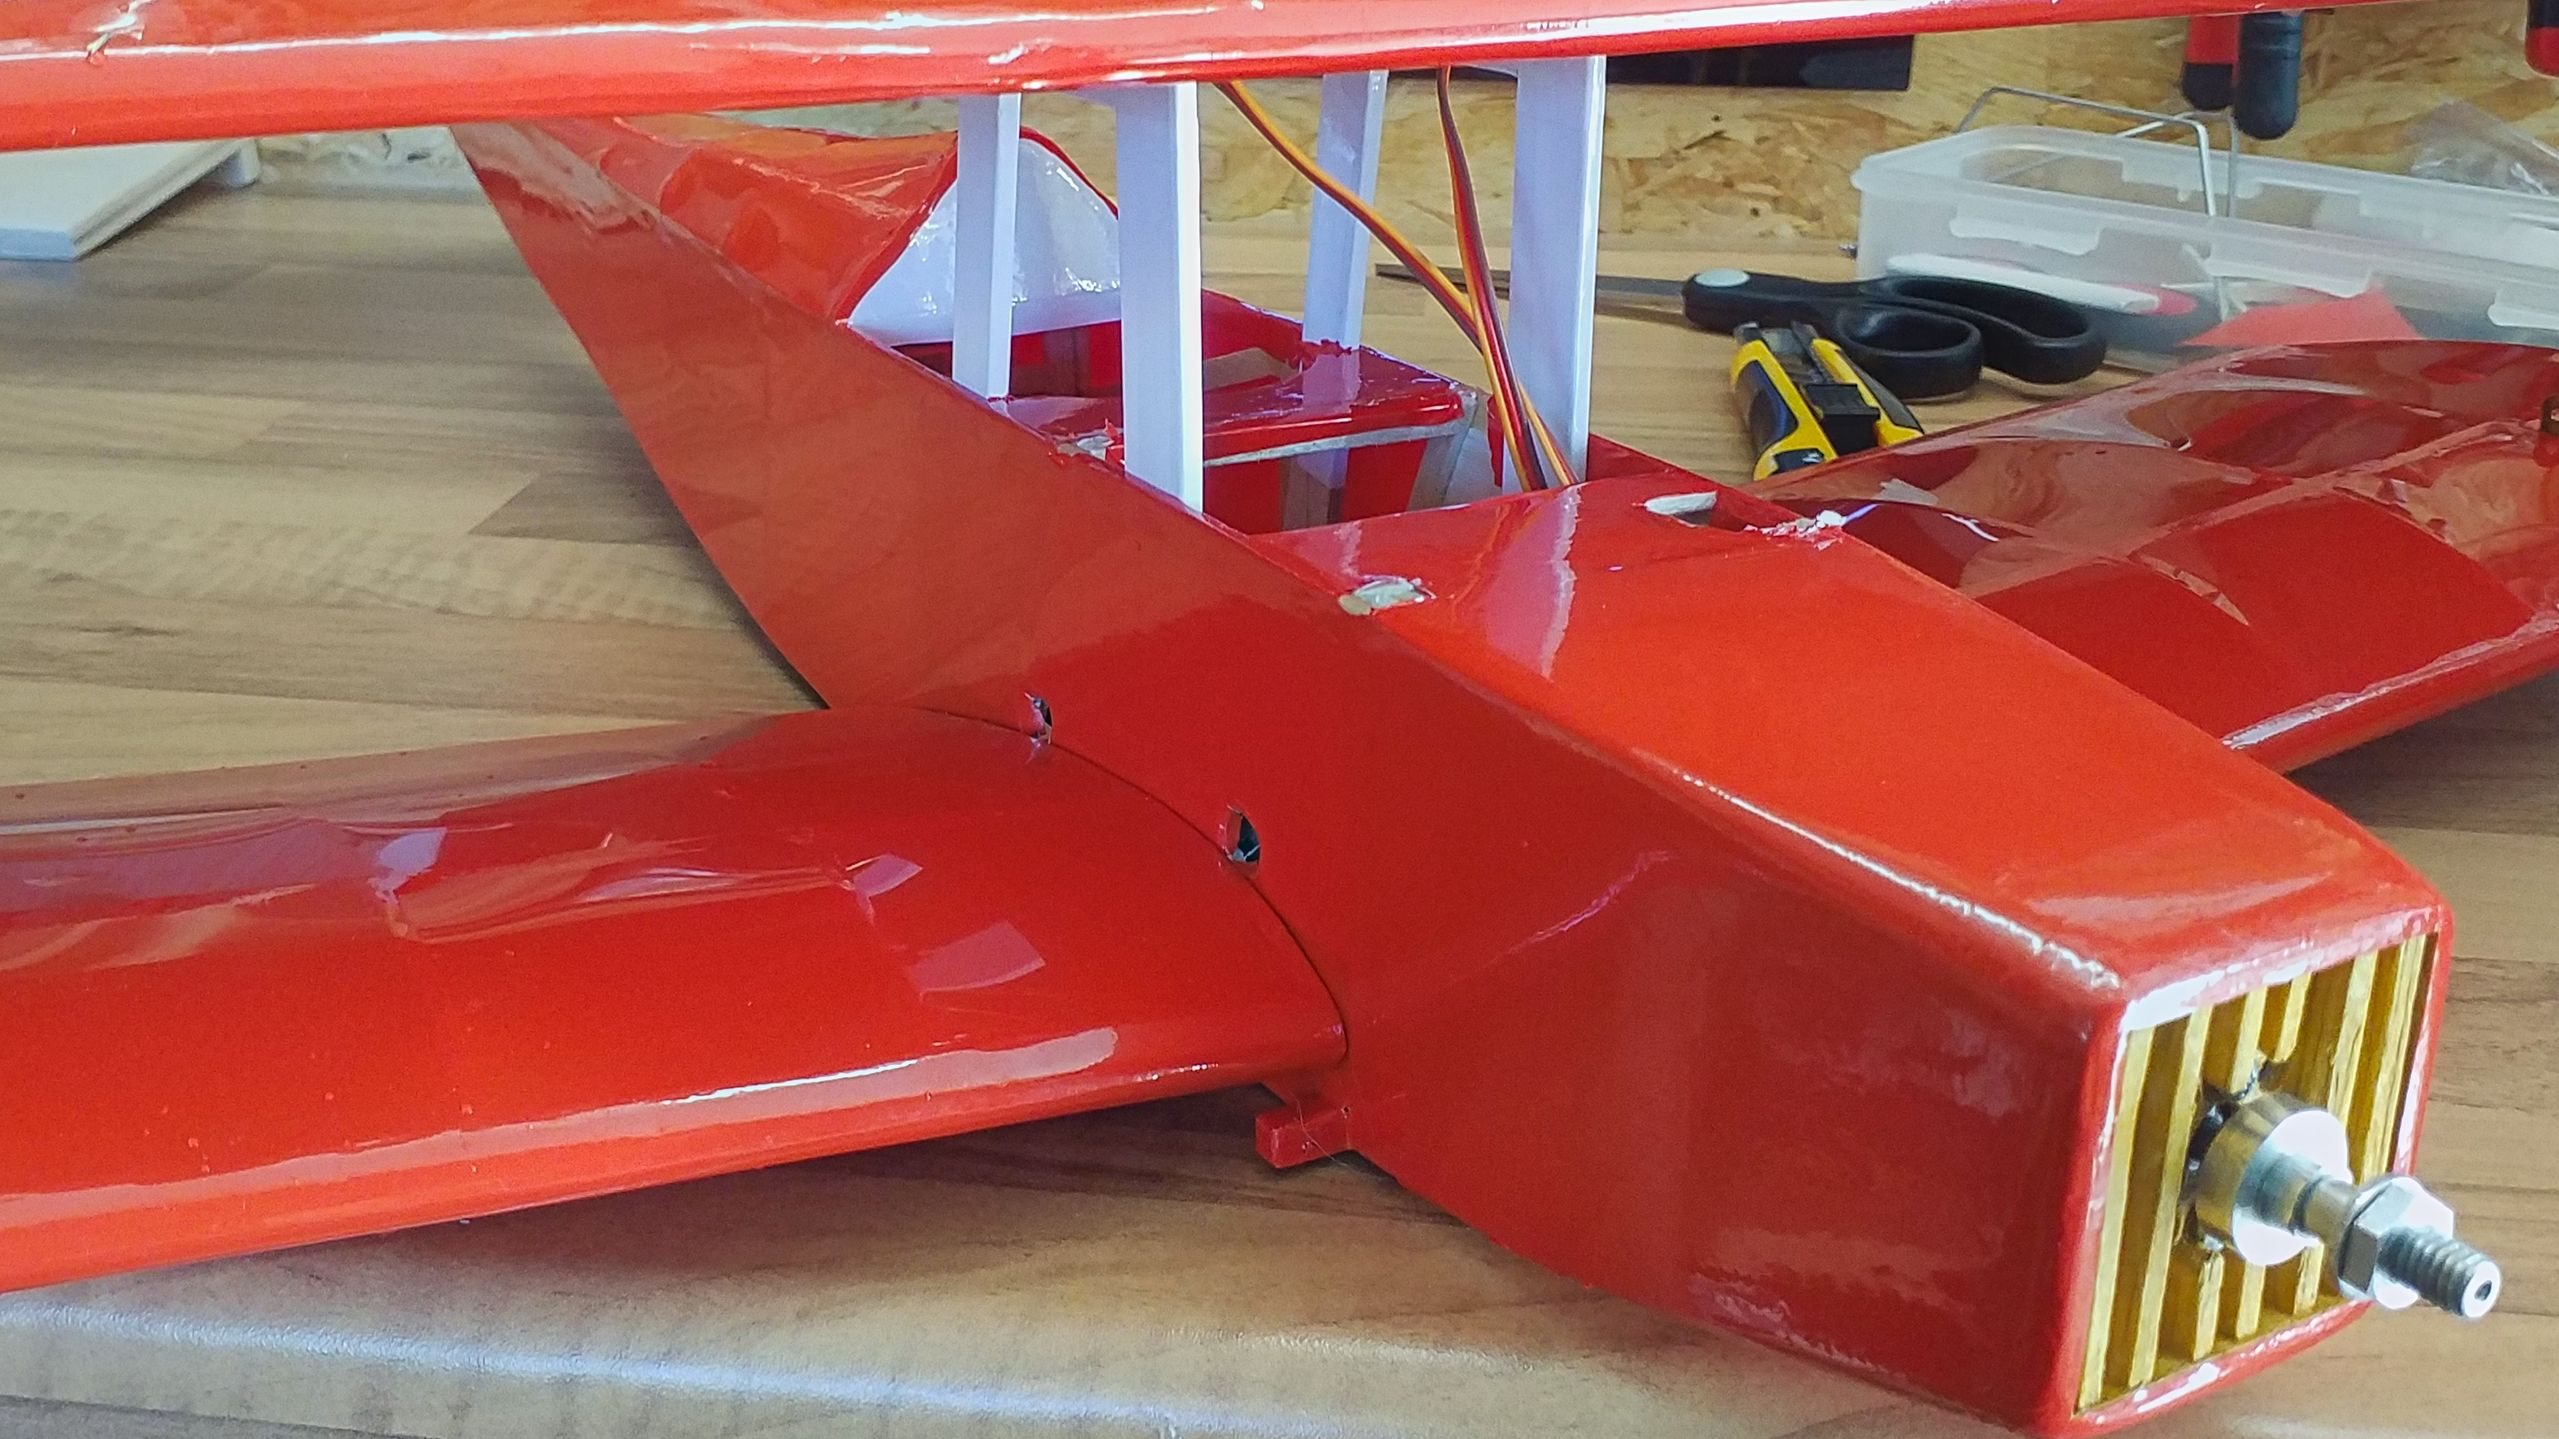 The new wing mounting made from plywood is seated farther to the rear.